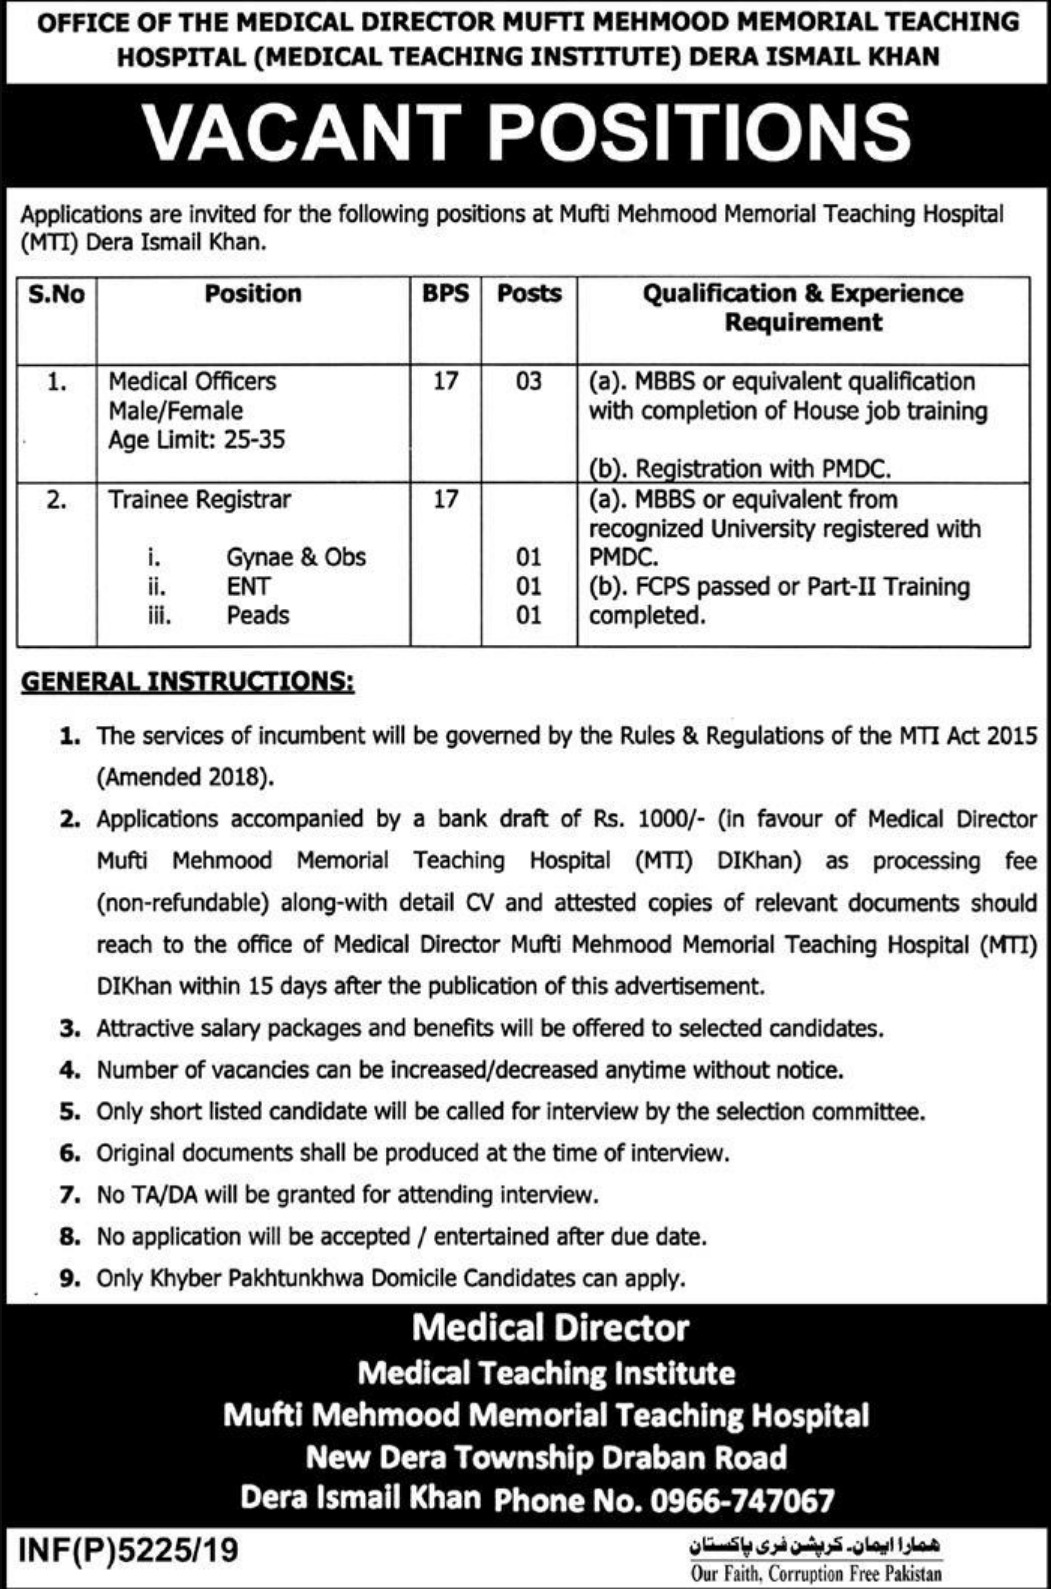 Mufti Mehmood Memorial Teaching Hospital D.I. Khan Jobs 2019